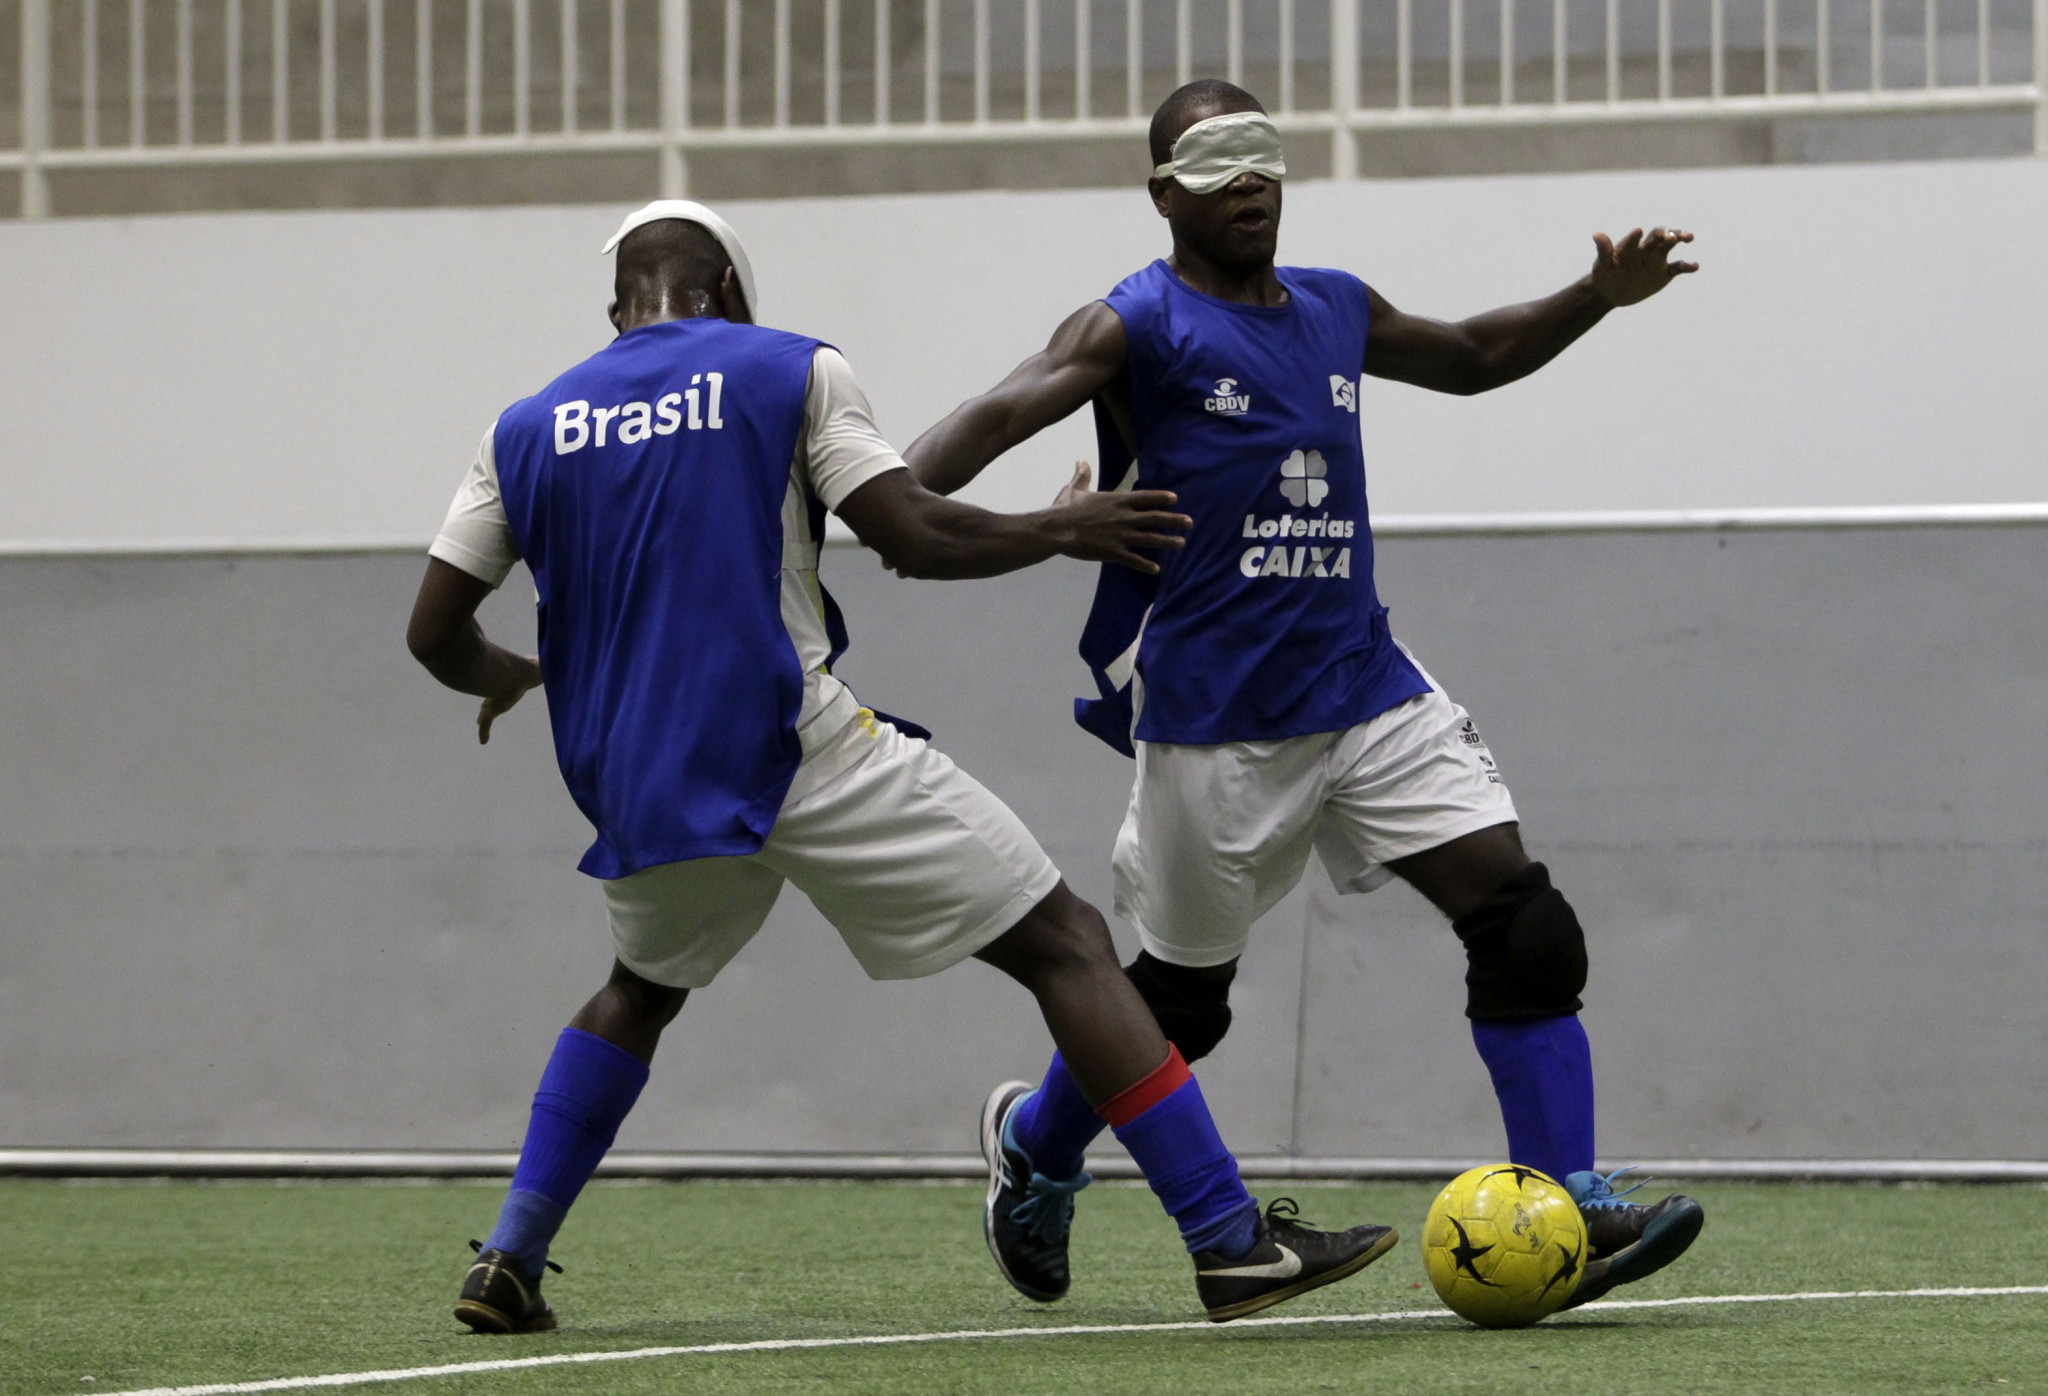 Brazil's perfect blind football record under threat at Tokyo 2020 Paralympics